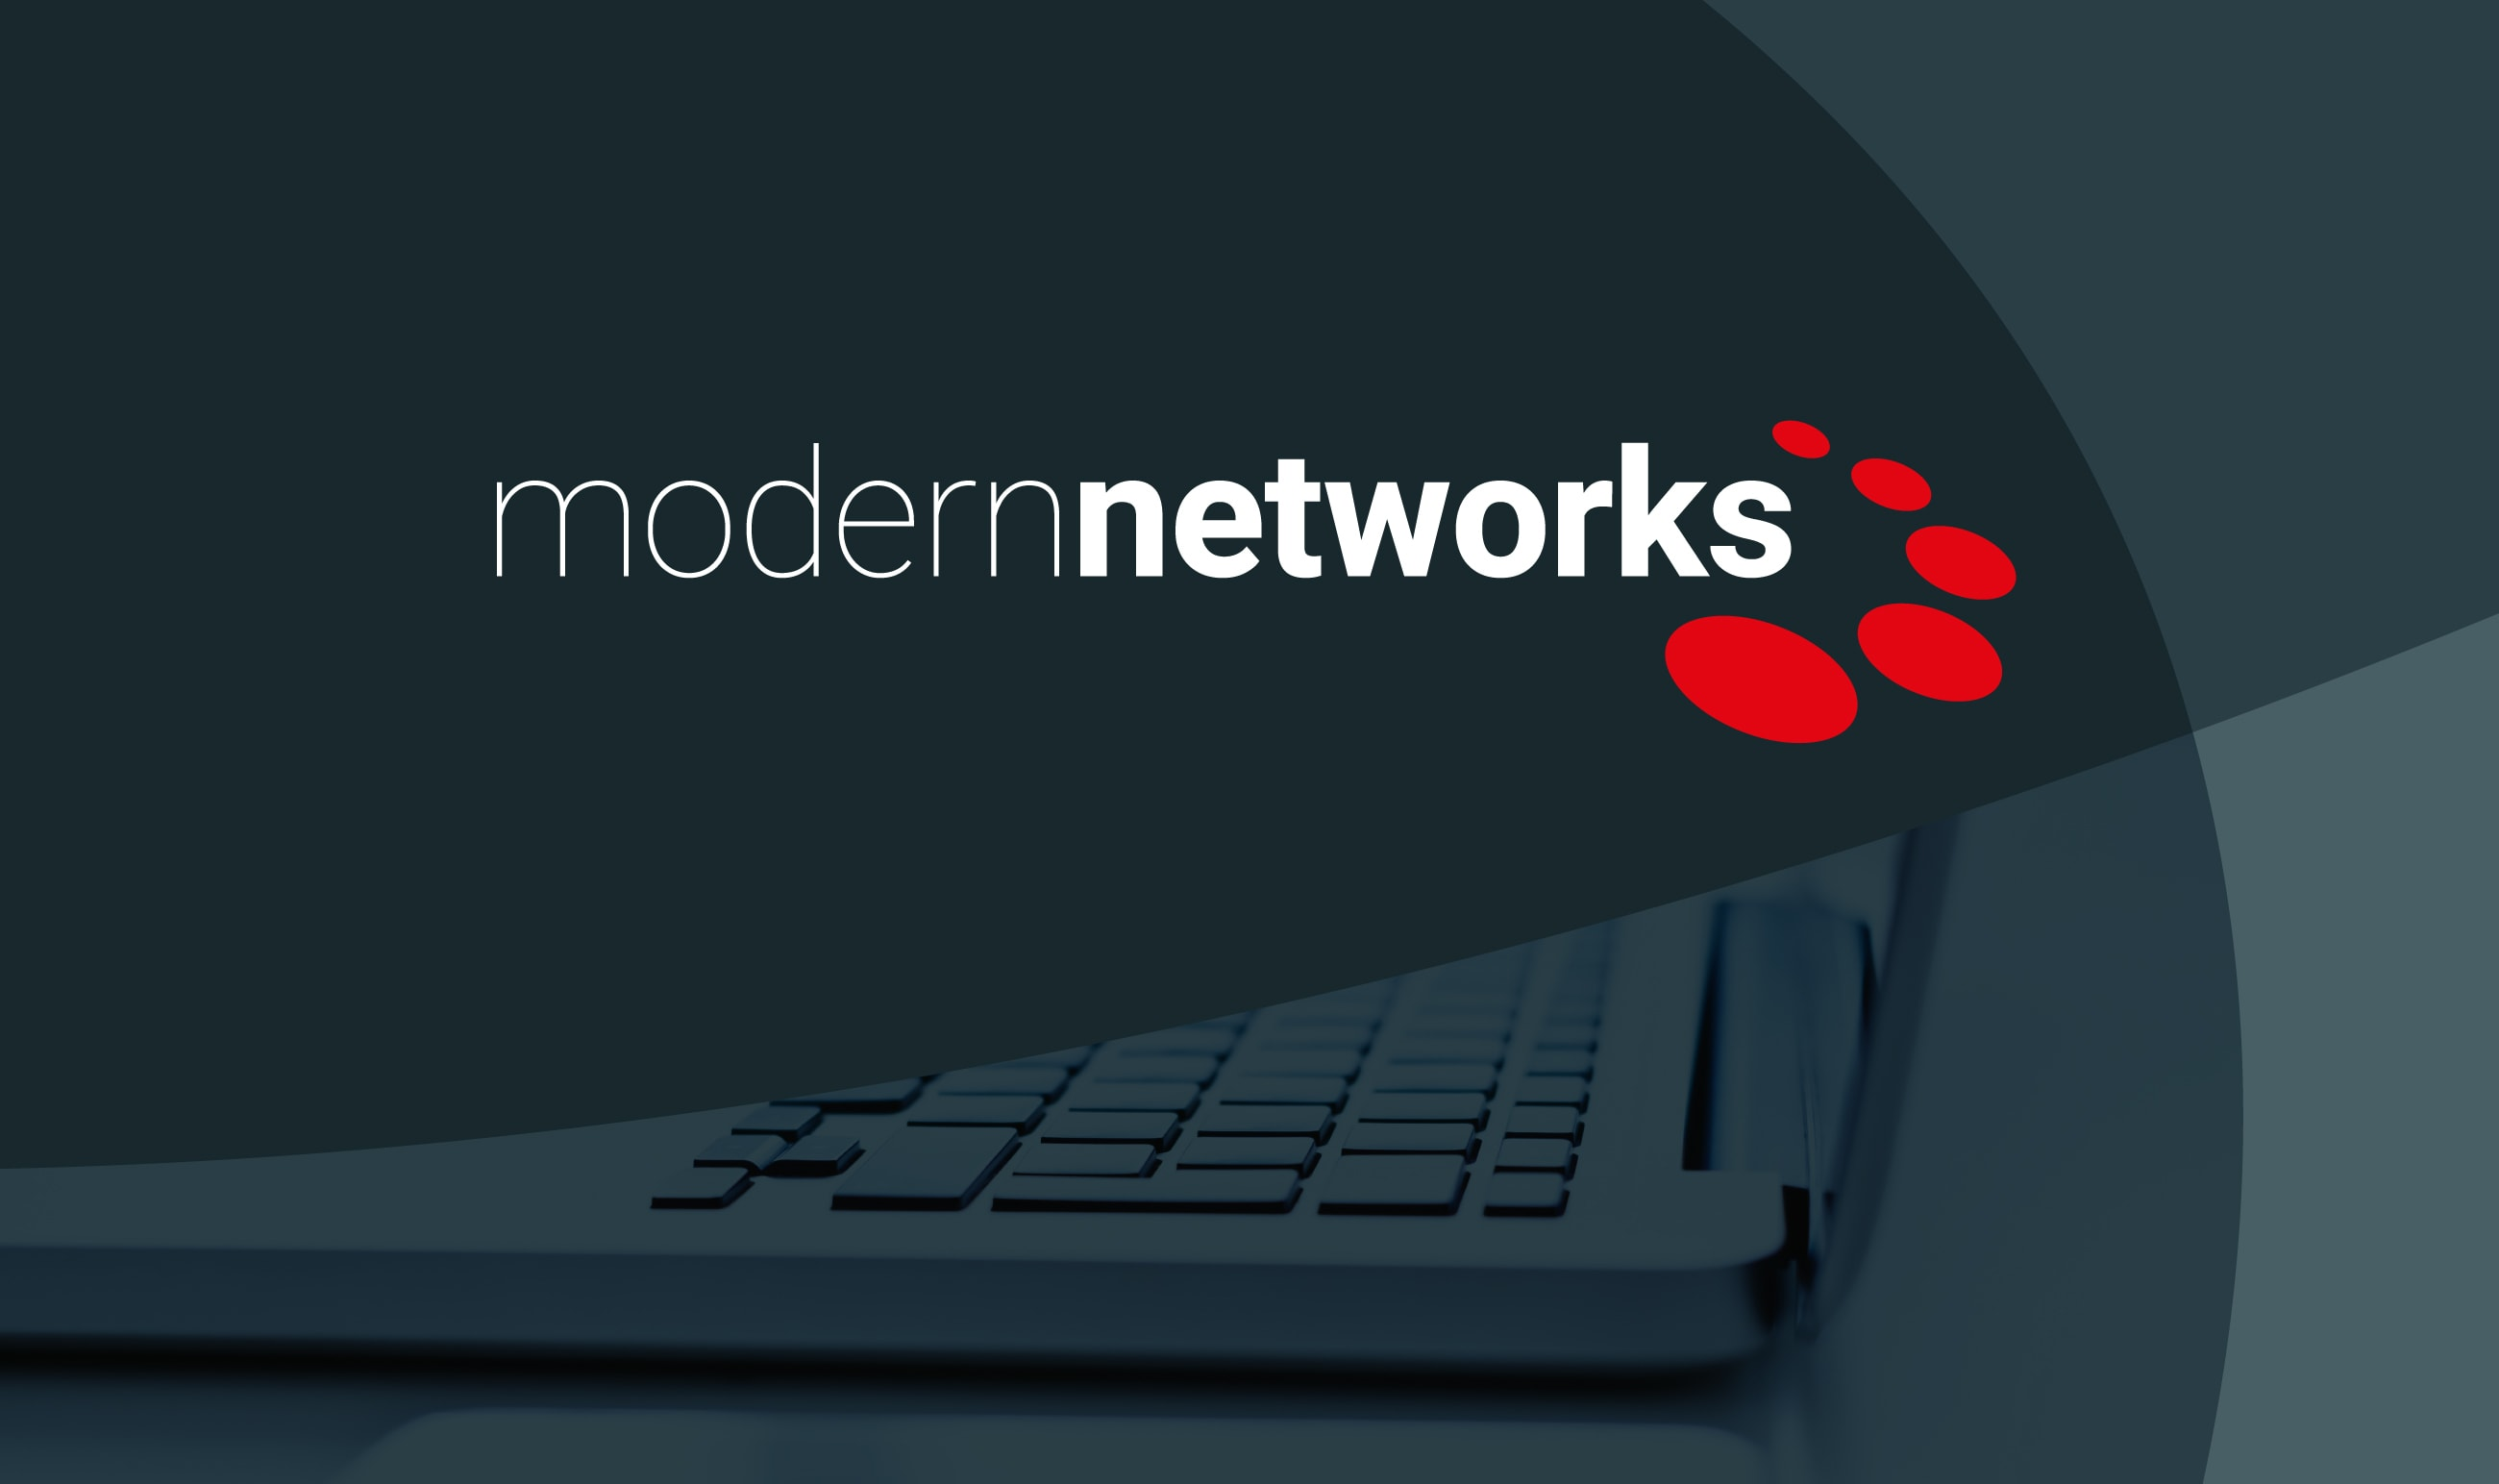 Modern Networks logo white text on a grey background with red oval graphics around the 's'.